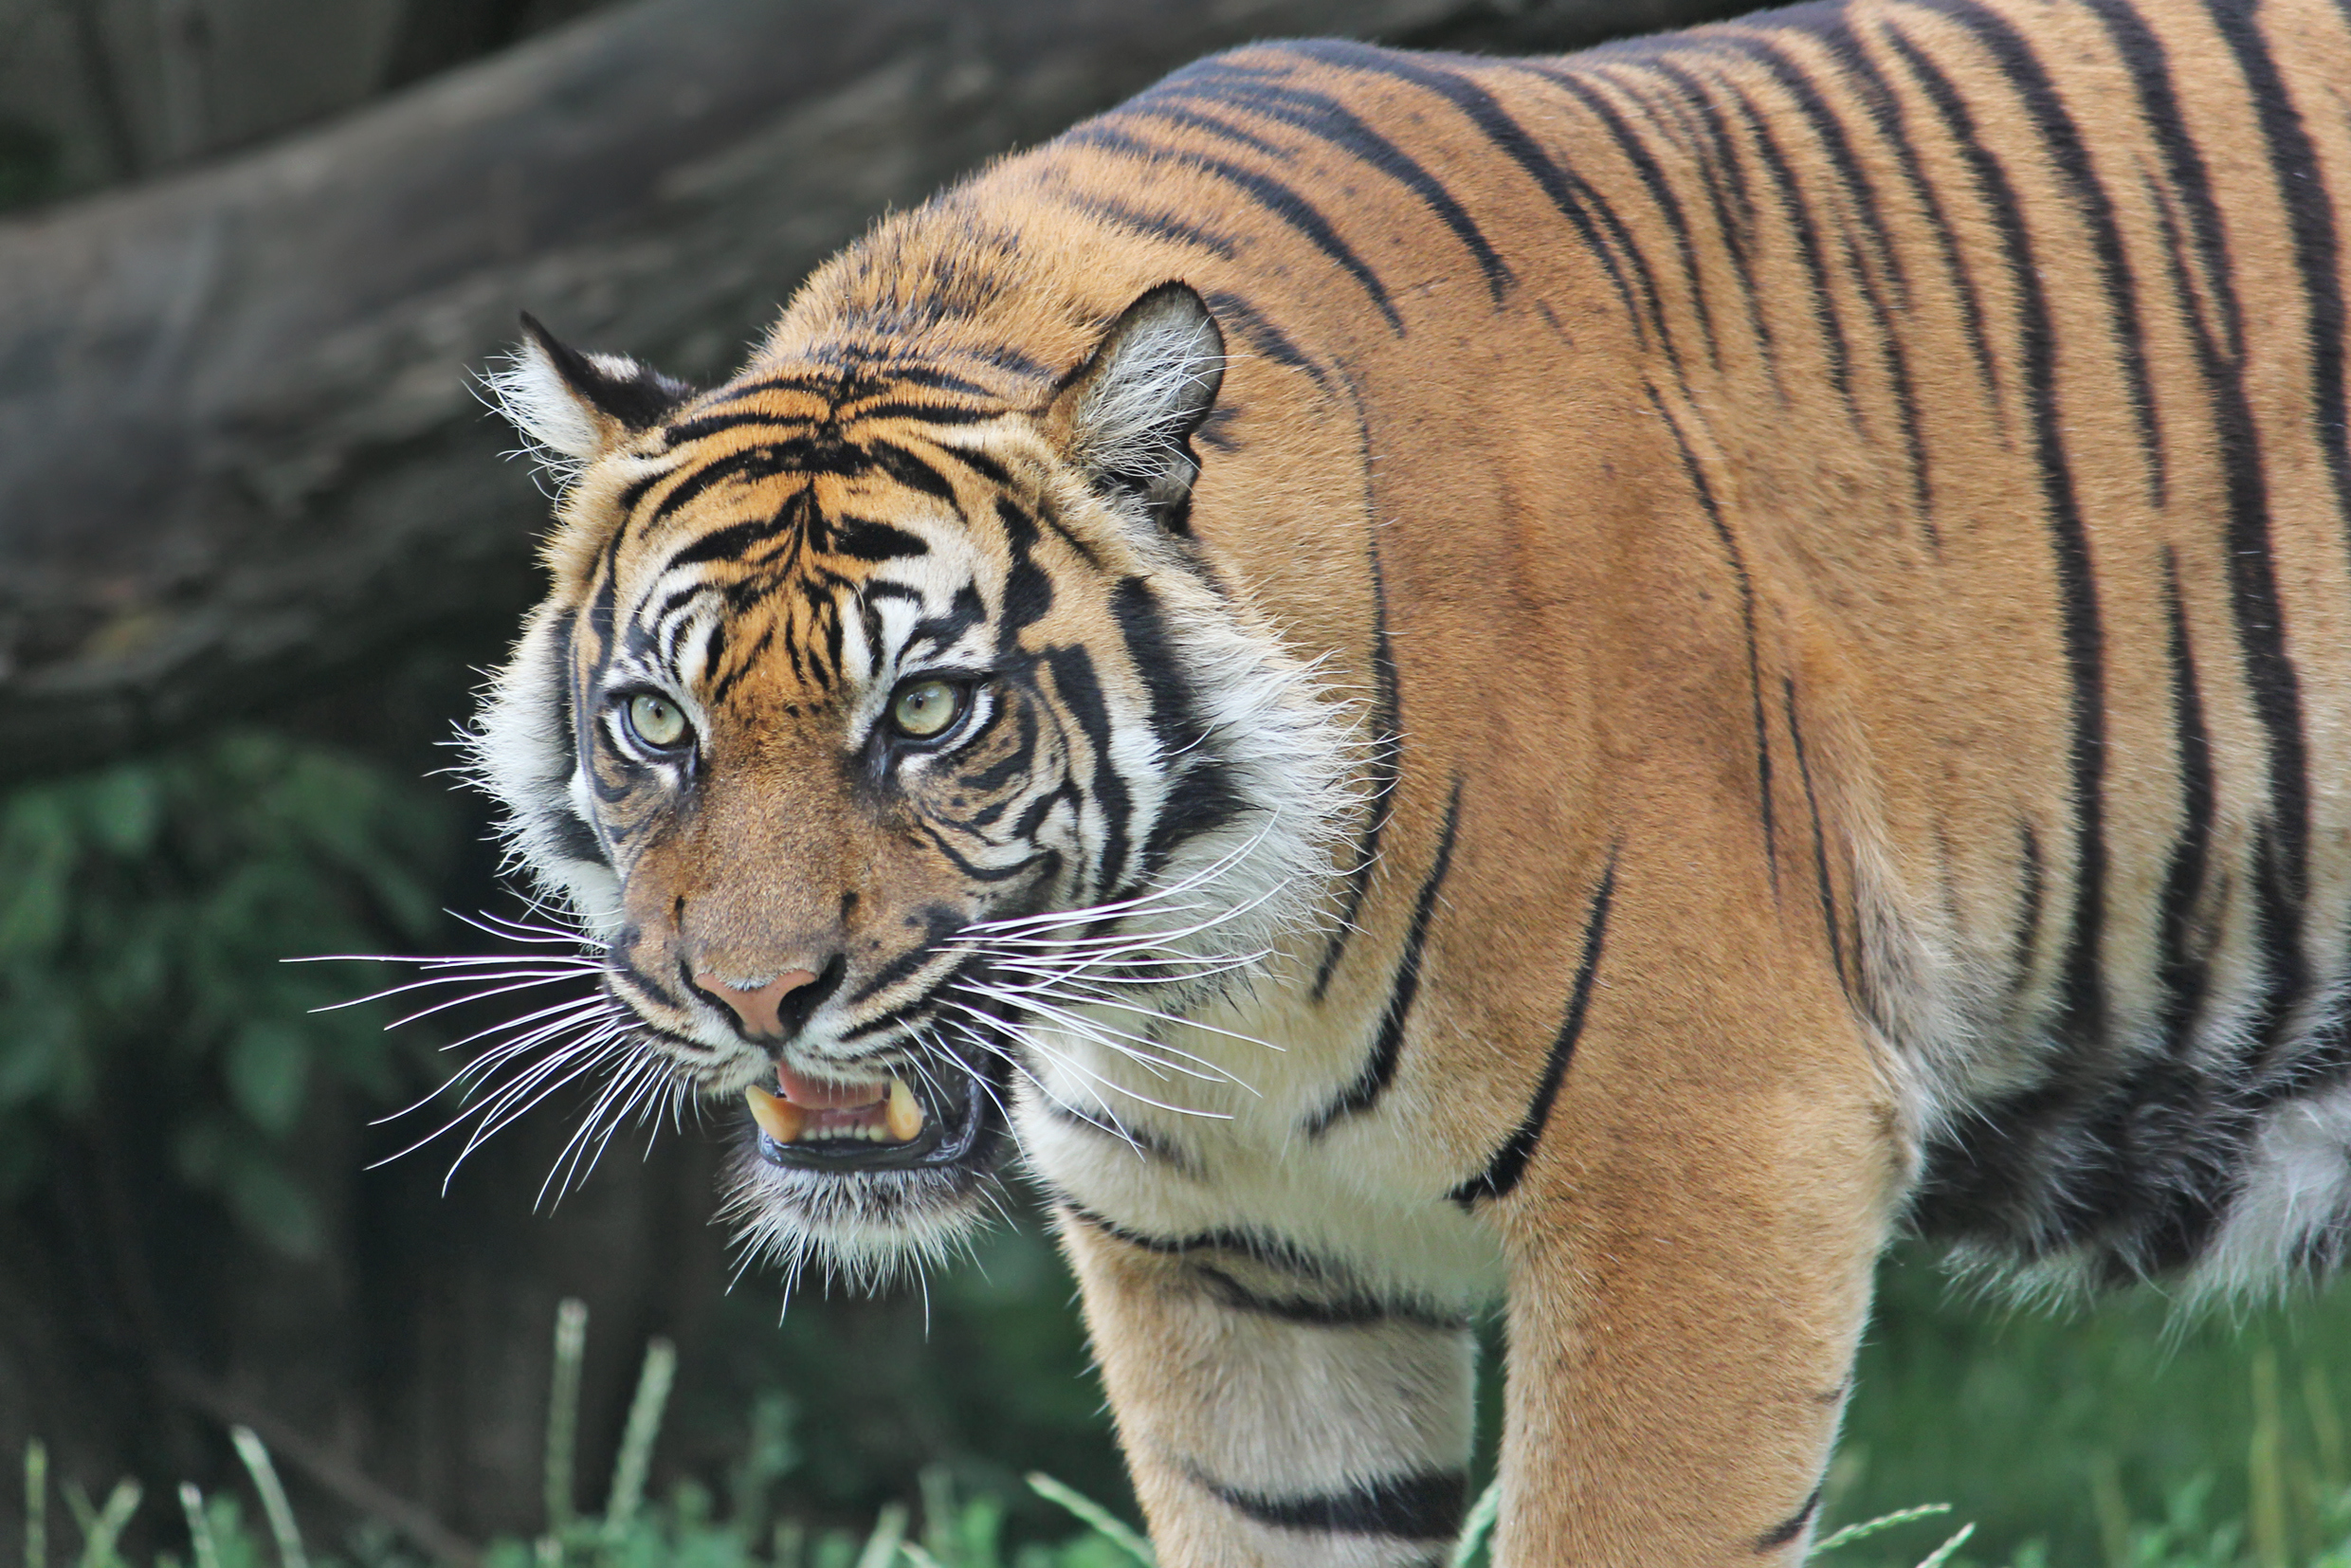 Sumatran Tiger snarls.